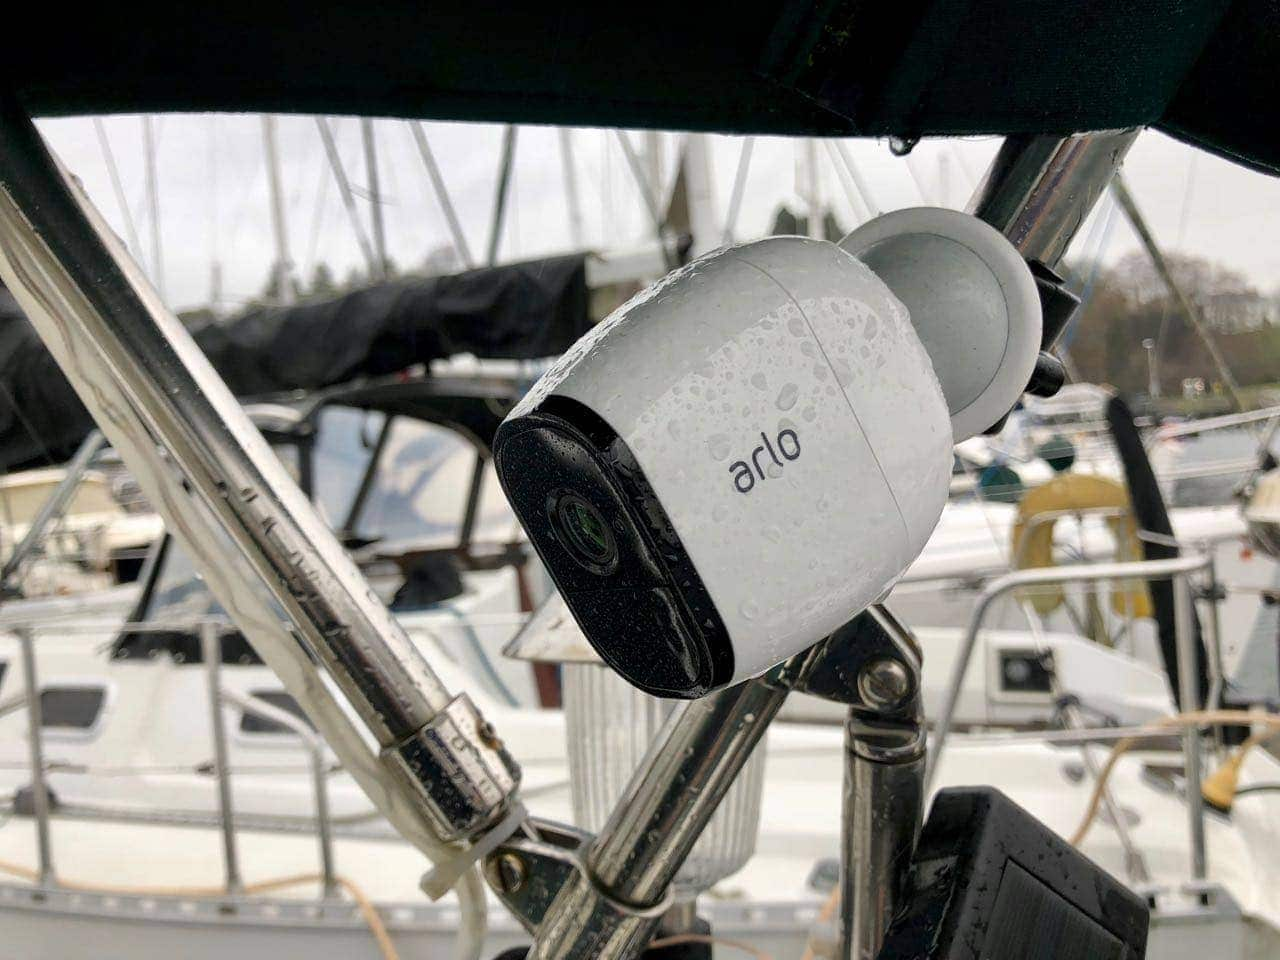 Arlo-on-sailboat-camera-cockpit-close-side-rain